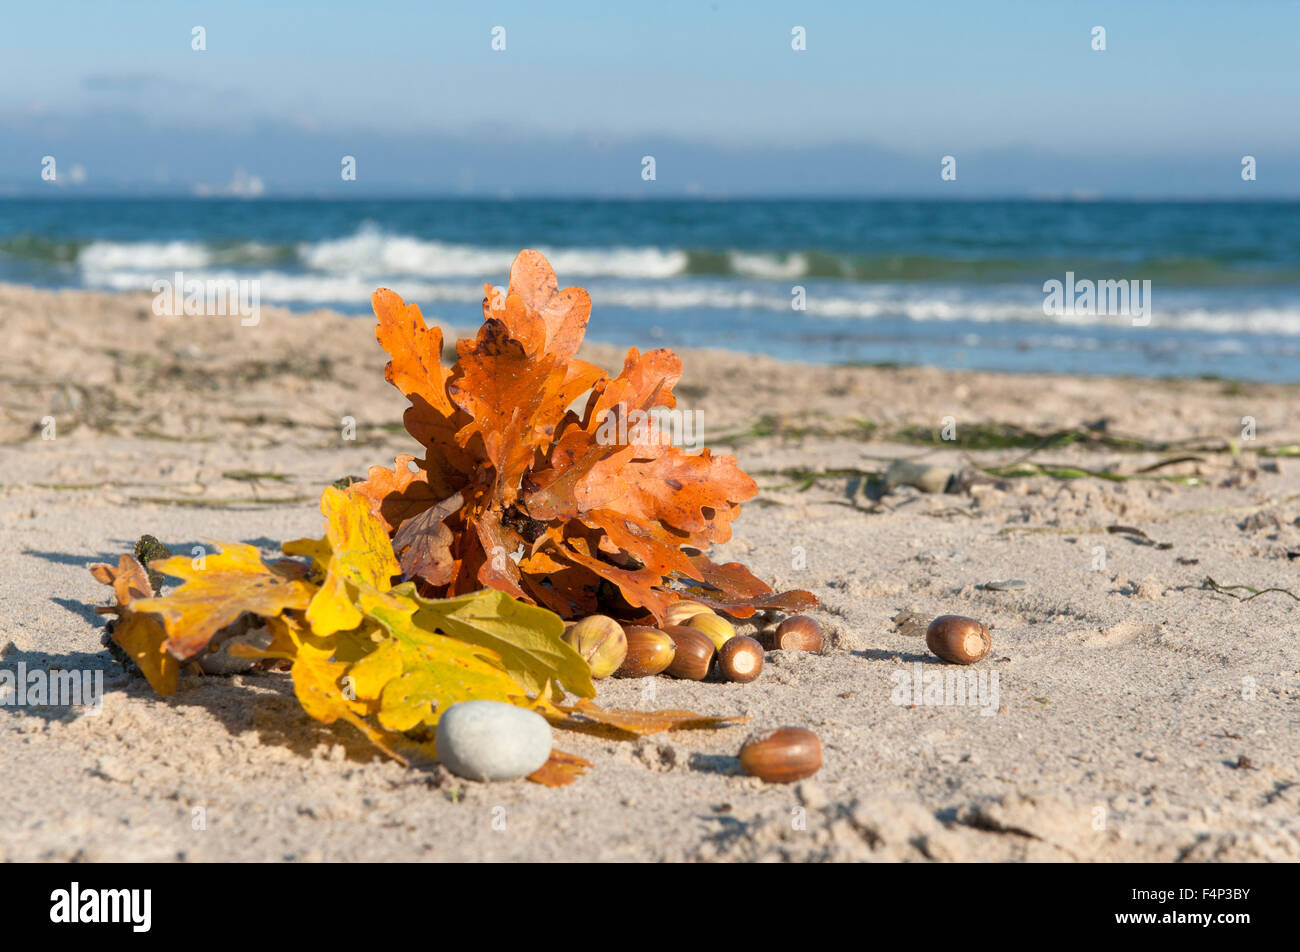 Free Downloads Quotes Wallpaper Mobile Coloured Oak Leaves Found In Autumn On The Beach Of